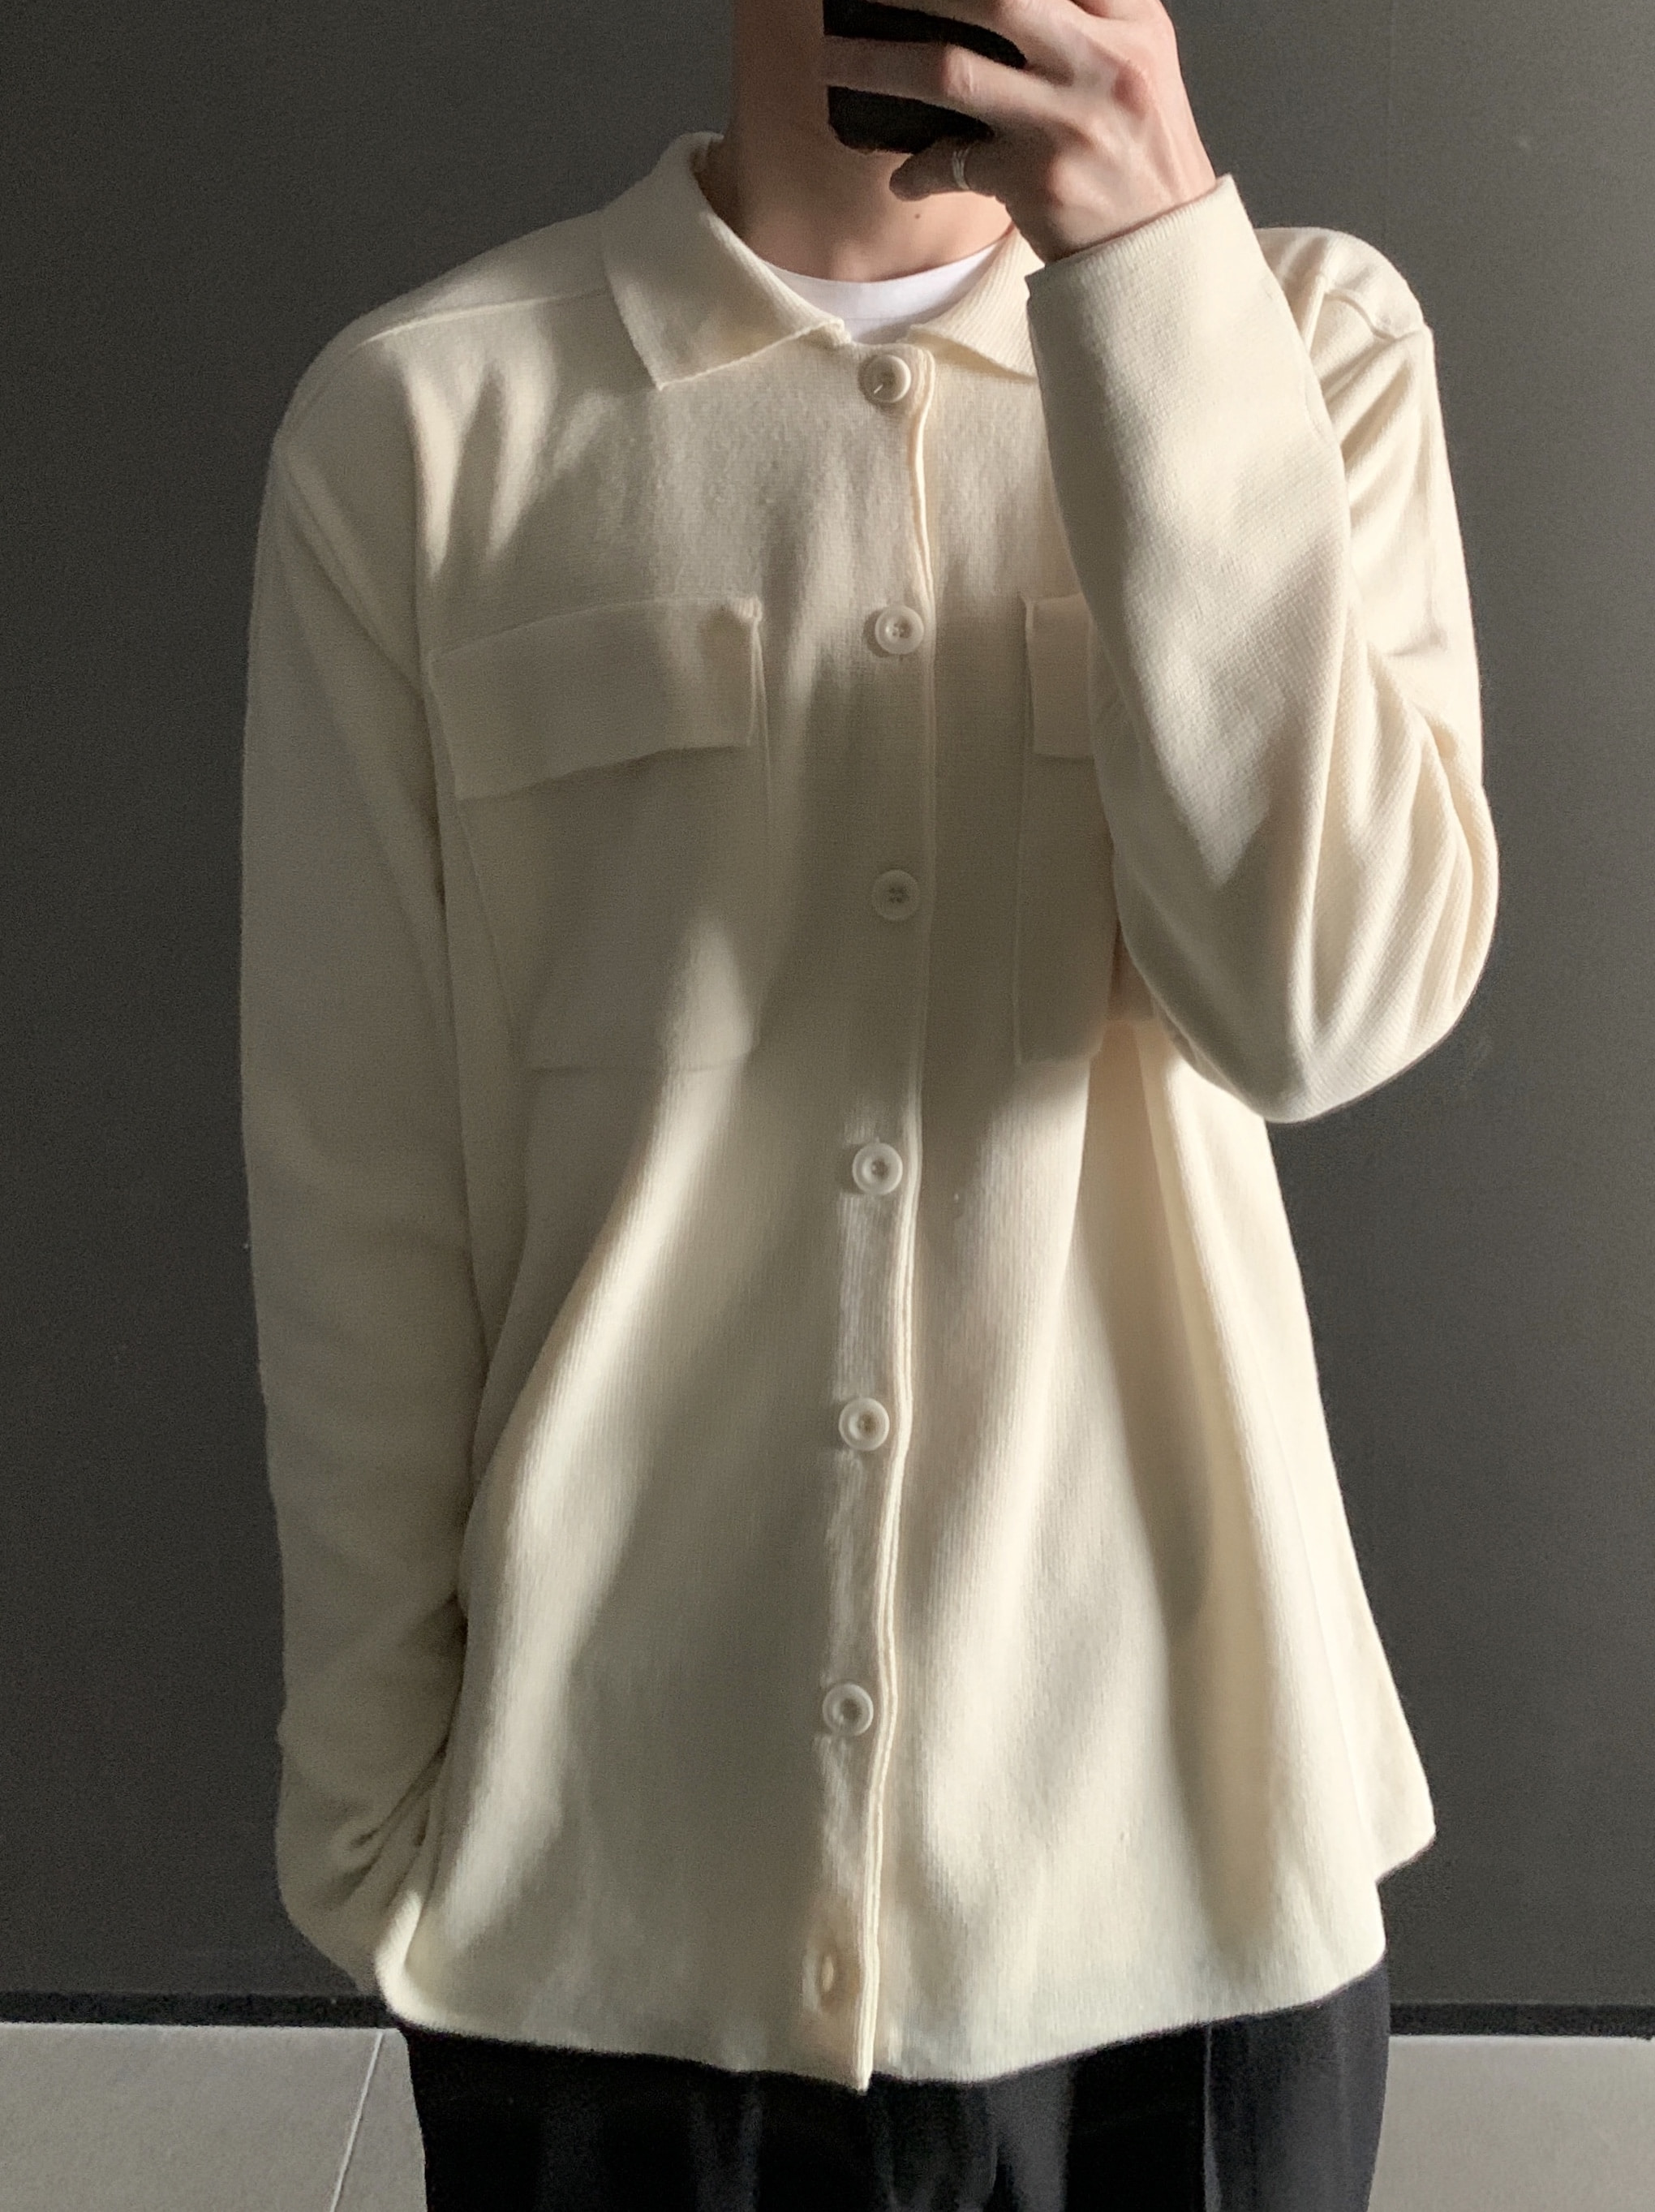 Re button collar knit jacket